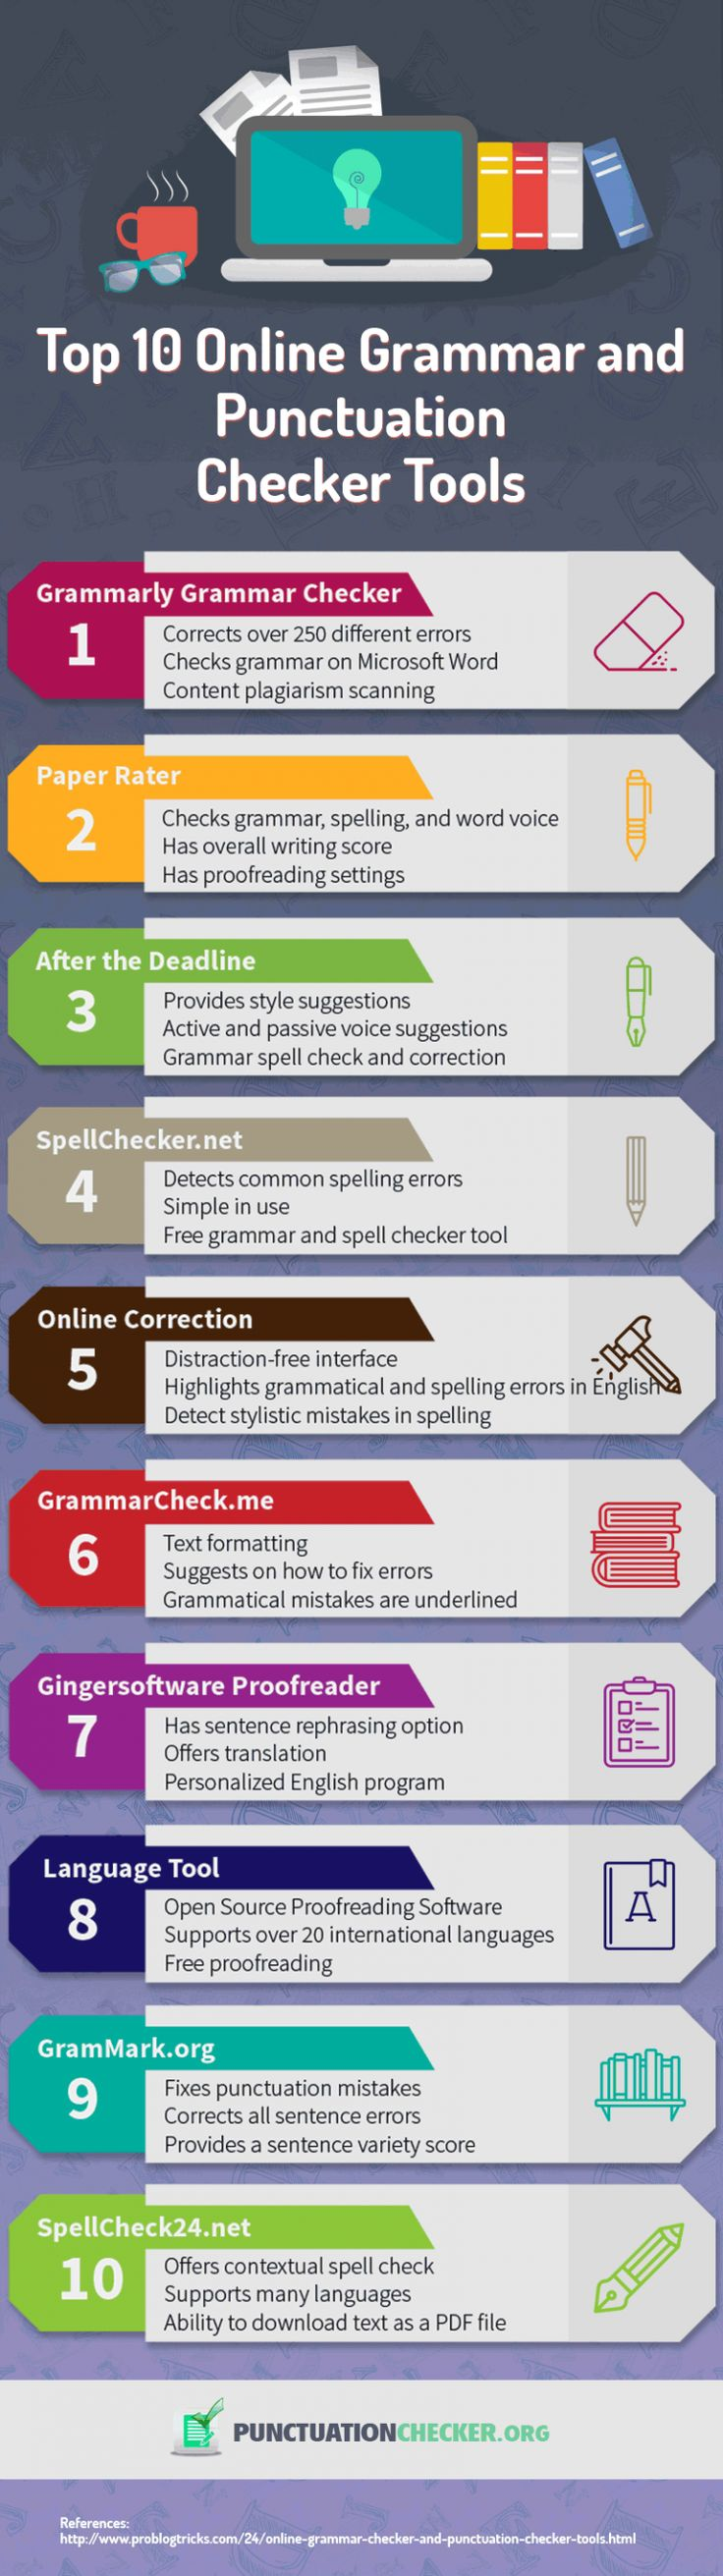 best ideas about online grammar checker punctuationchecker org top 10 online